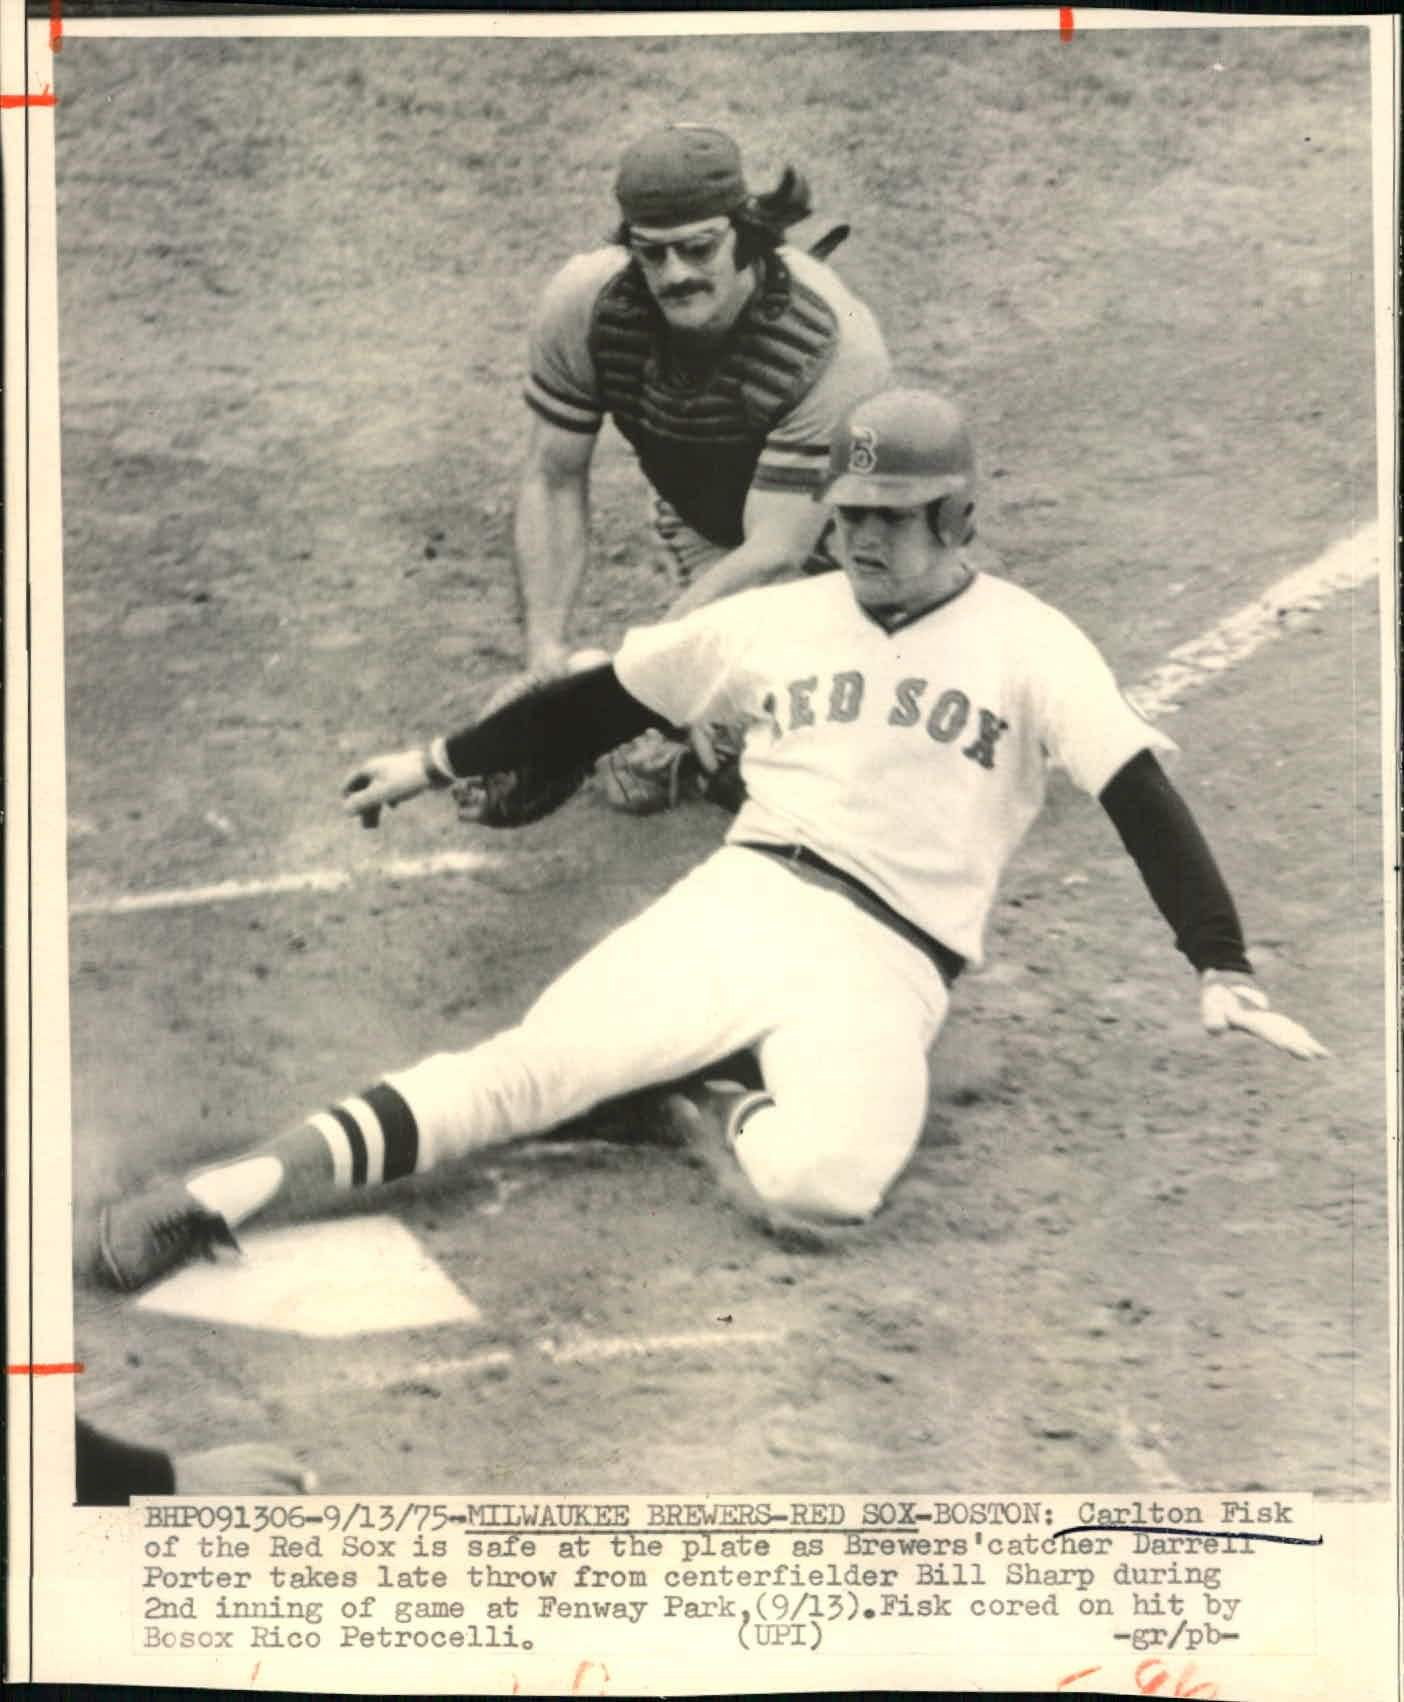 Carlton Fisk slides past Darrell Porter https://t.co/5GYxdVVqVj